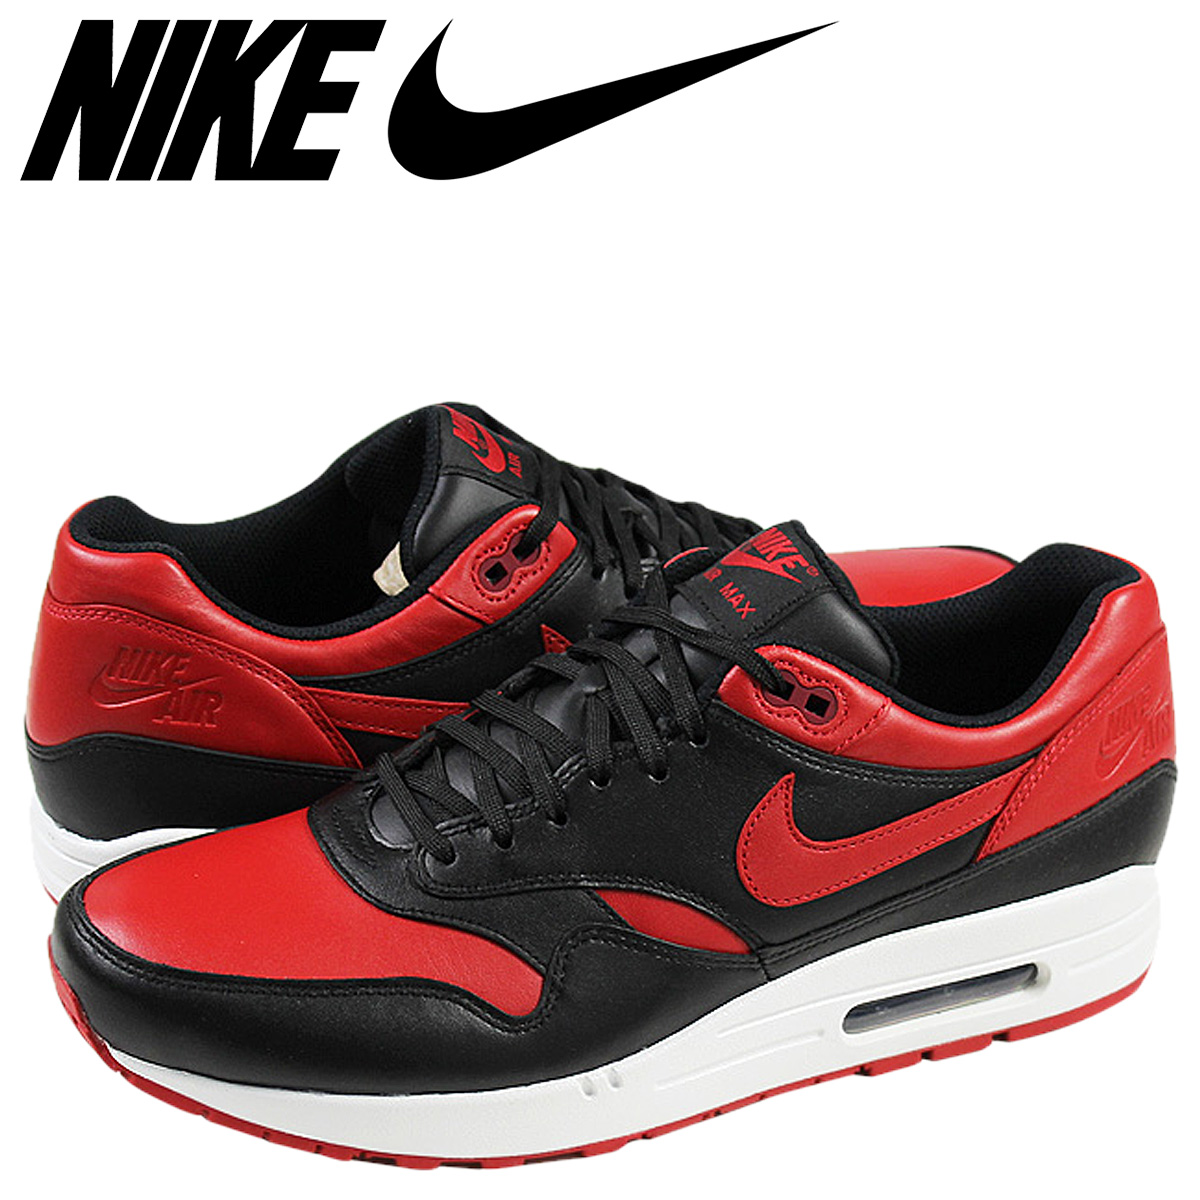 Nike Air Max 1 | Buy Sneakers Online | Express Shipping